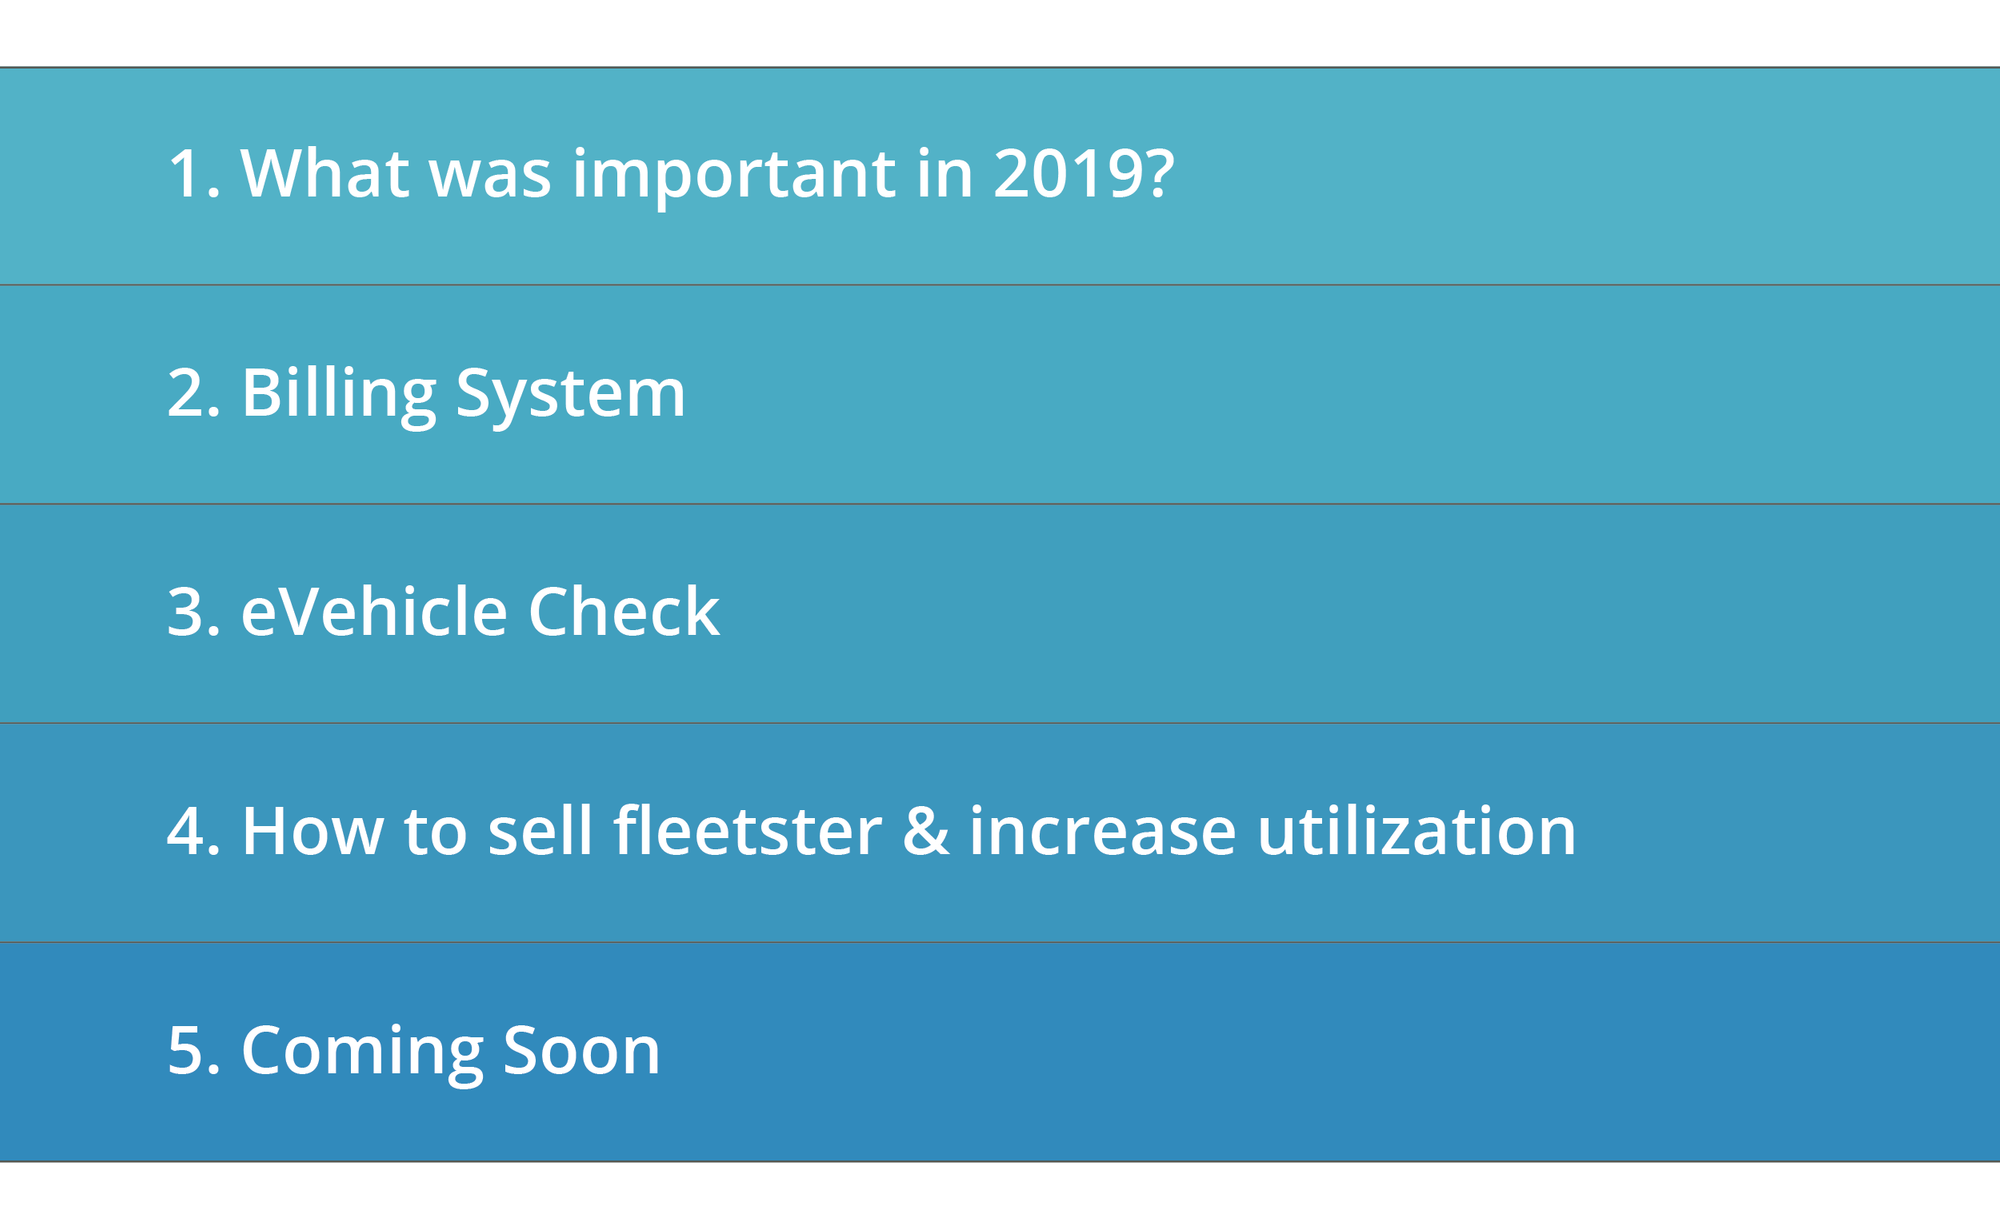 Agenda for fleetster Reloaded 2019